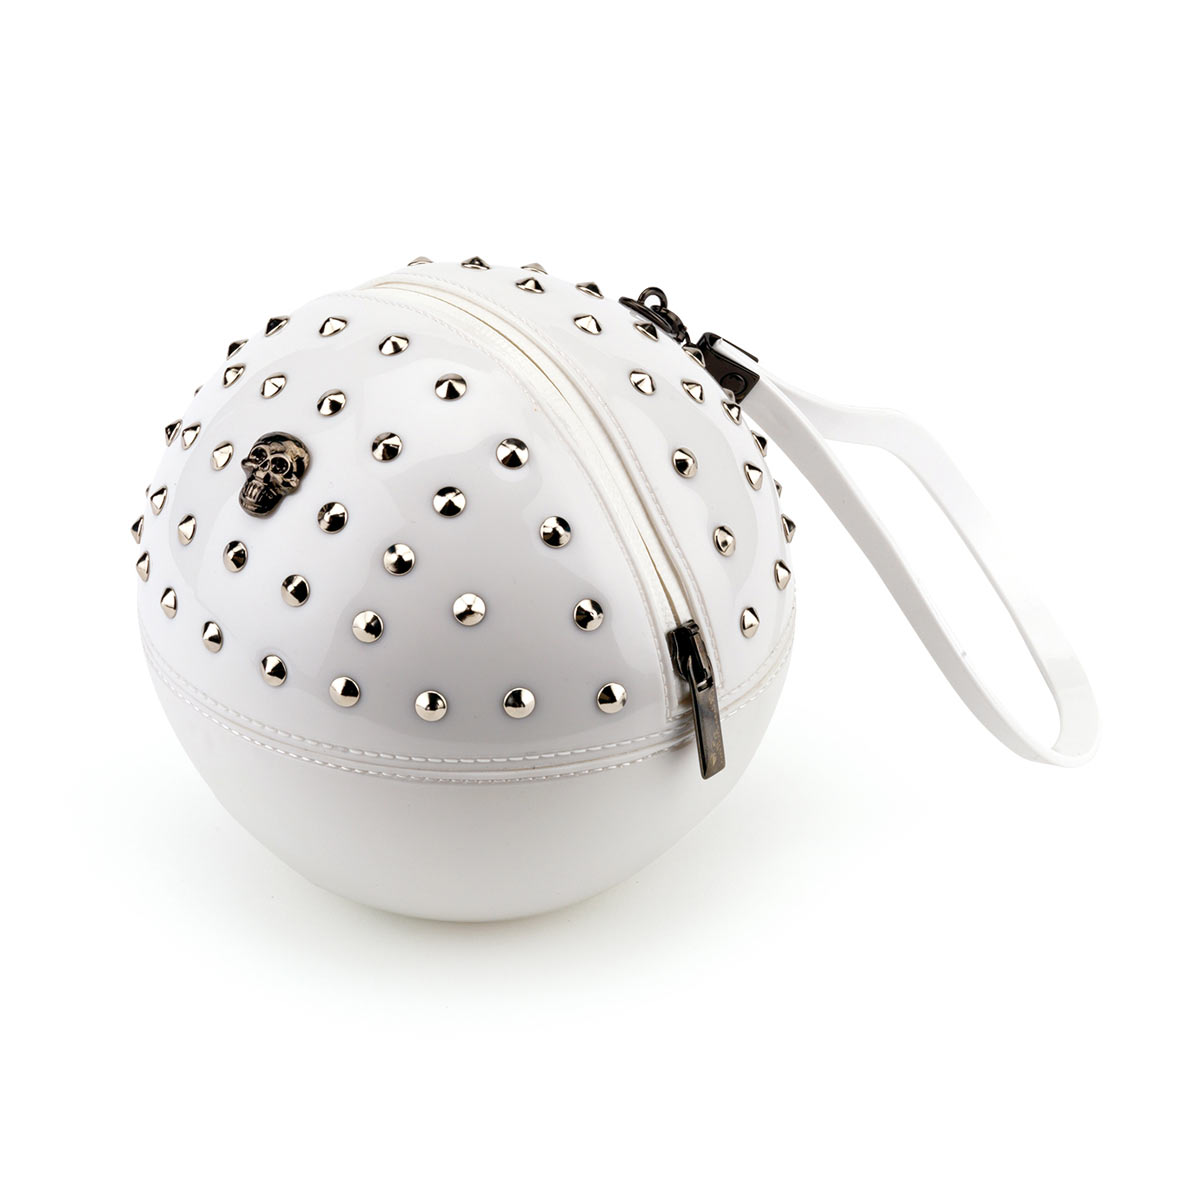 "Borsa sfera ""Rock'n'Ball"" borchiata in pvc lucido"